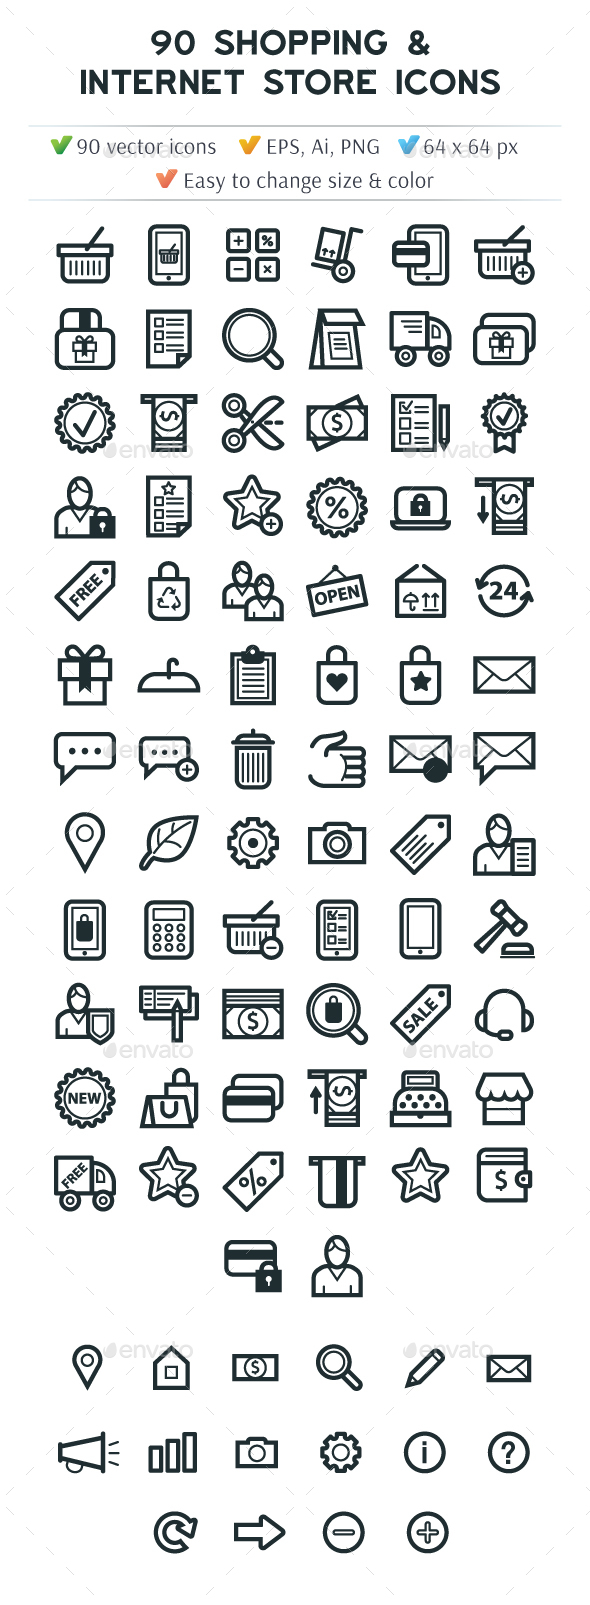 Shopping Internet Store Icon Set - Business Icons